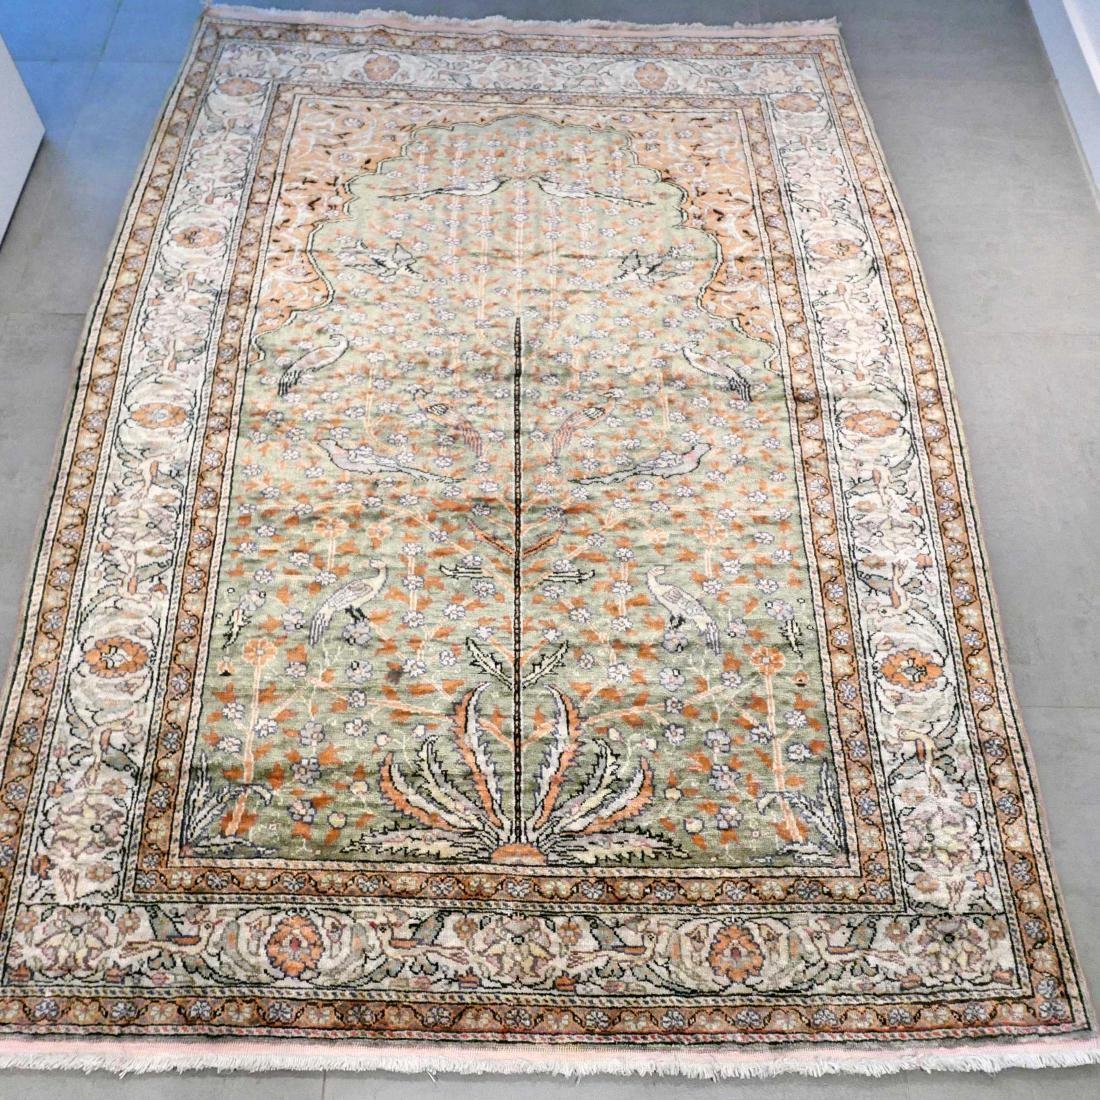 Special Silk Kayseri Silk Hand Knotted Rug 5.6x4.1